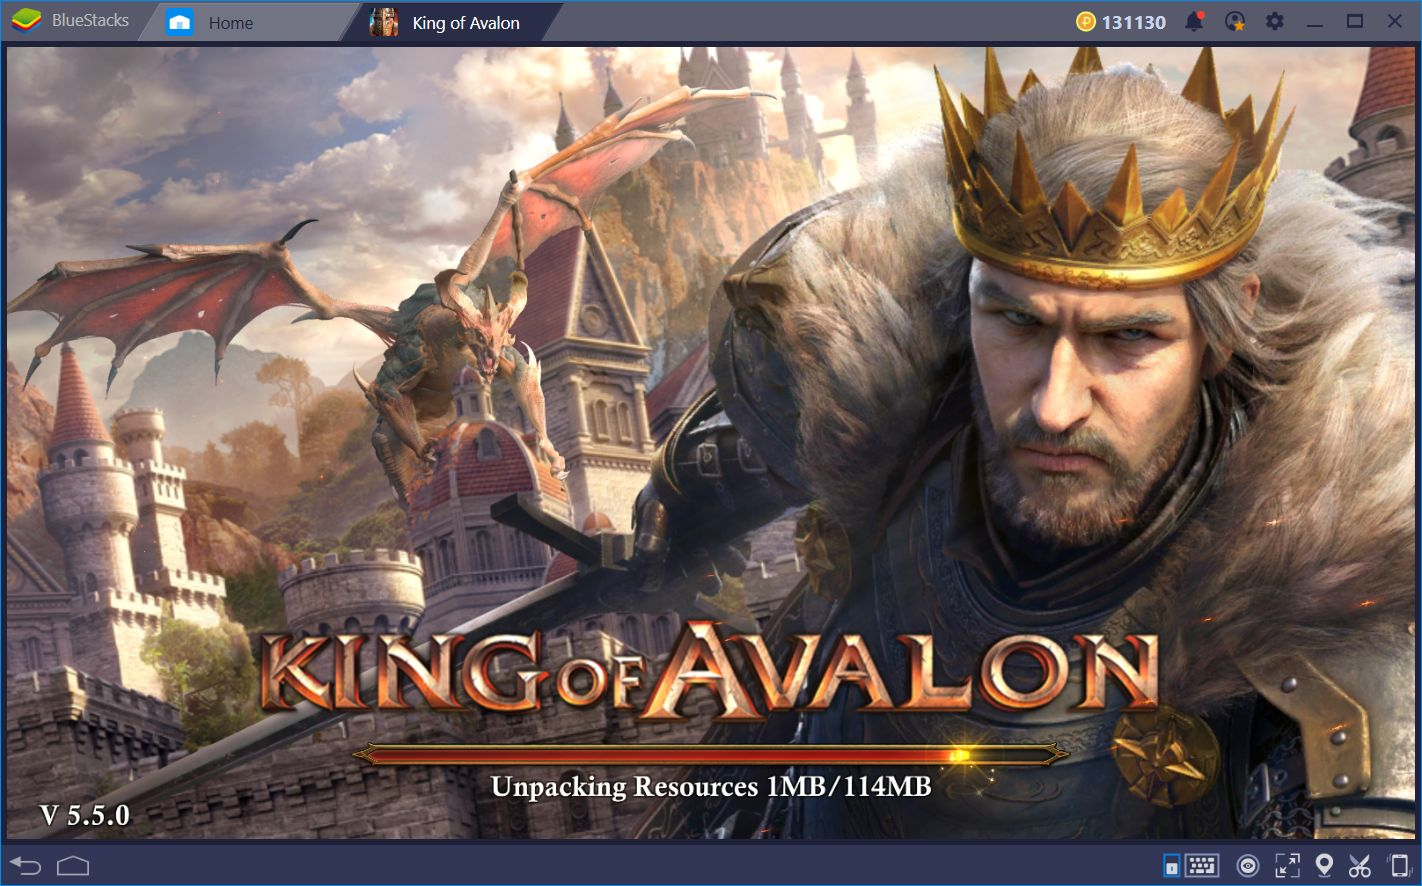 5 Games to Play on BlueStacks for GoT Fans: Winter is Here